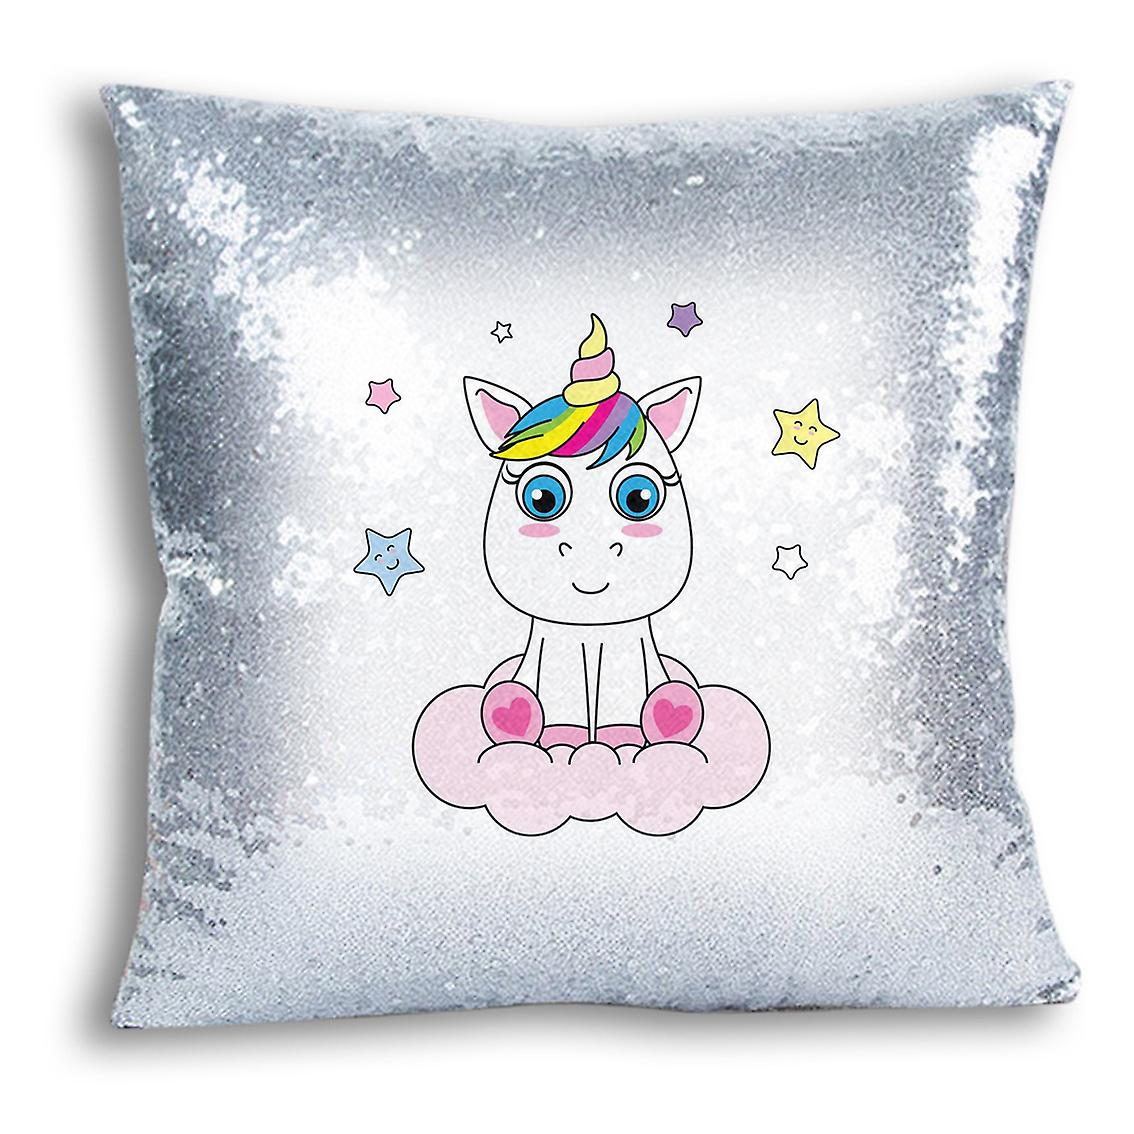 For Silver Printed I tronixsUnicorn 8 Decor Design Cover Home With Inserted Sequin CushionPillow 54ALq3Rjc